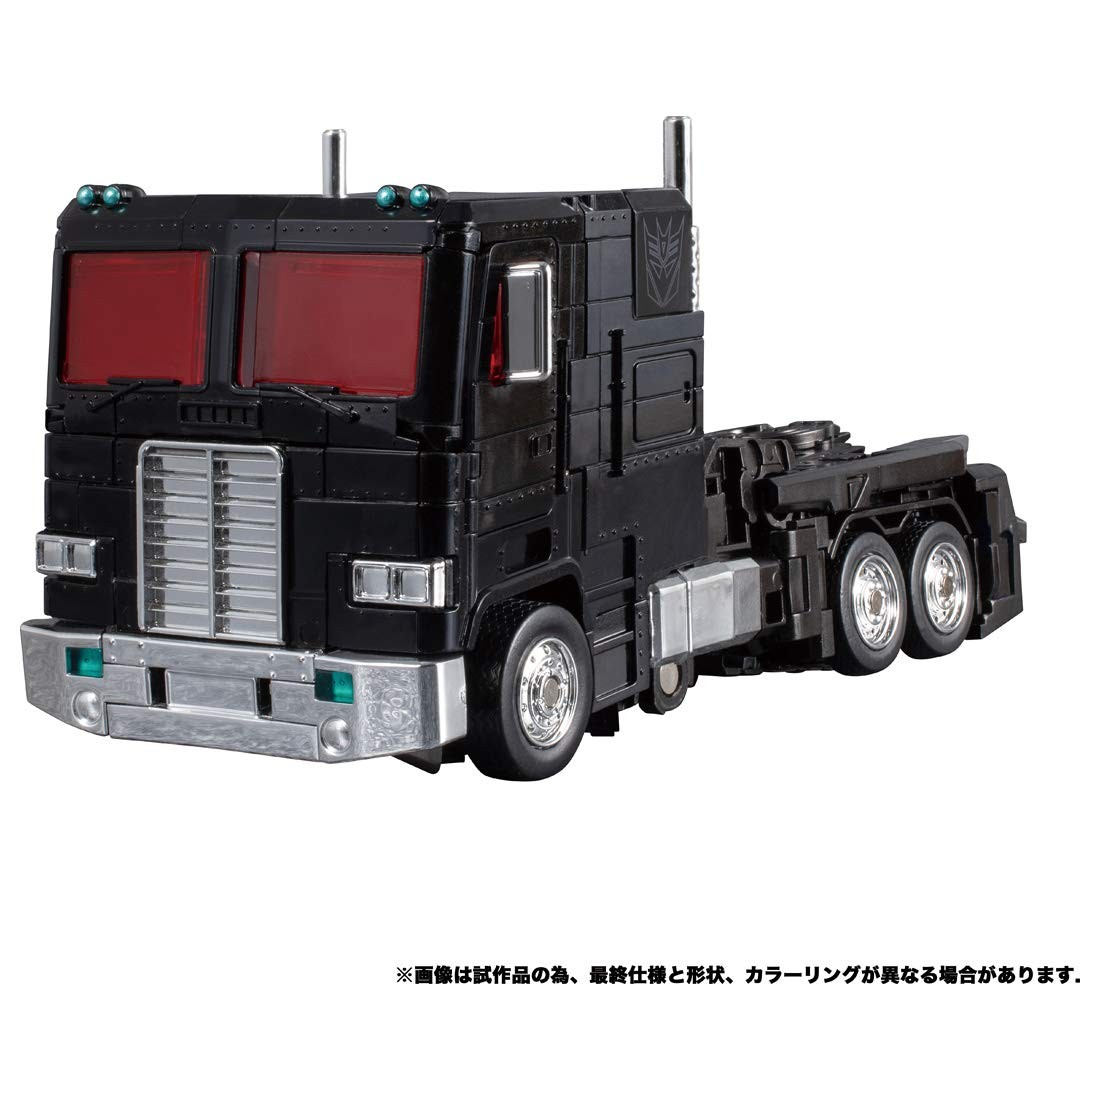 Transformers News: Listing and new Images up for Transformers Masterpiece MP-49 Black Convoy